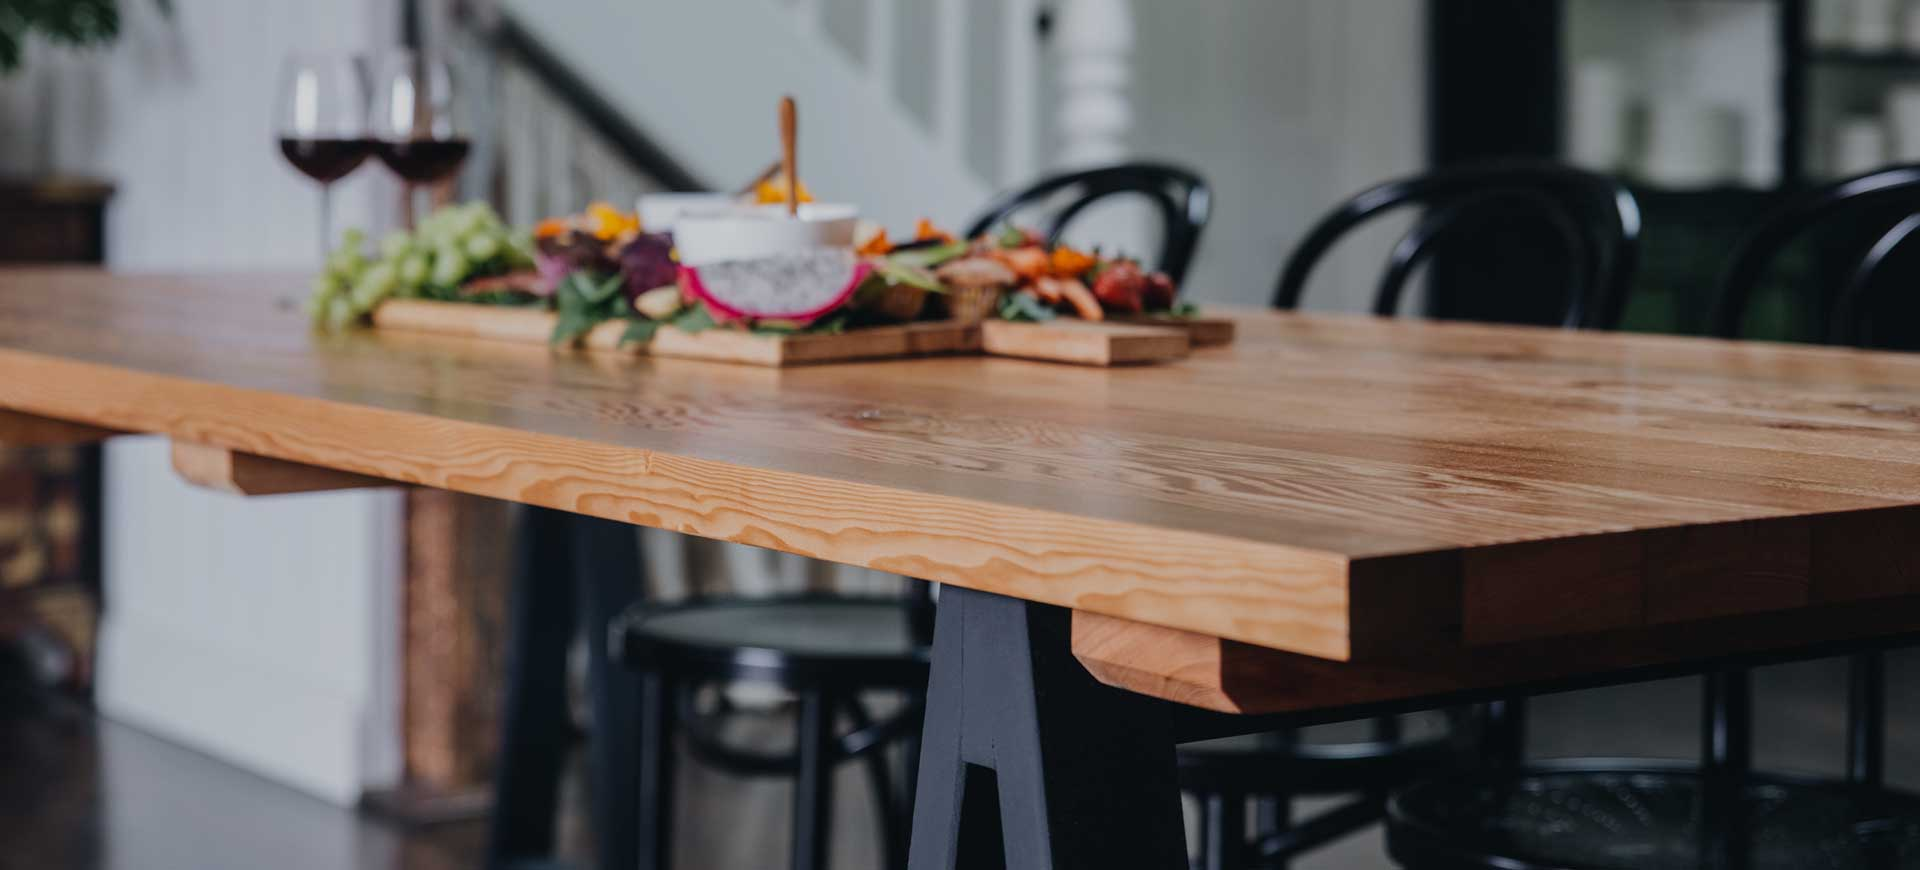 Plank and Trestle Timber Tables, order online